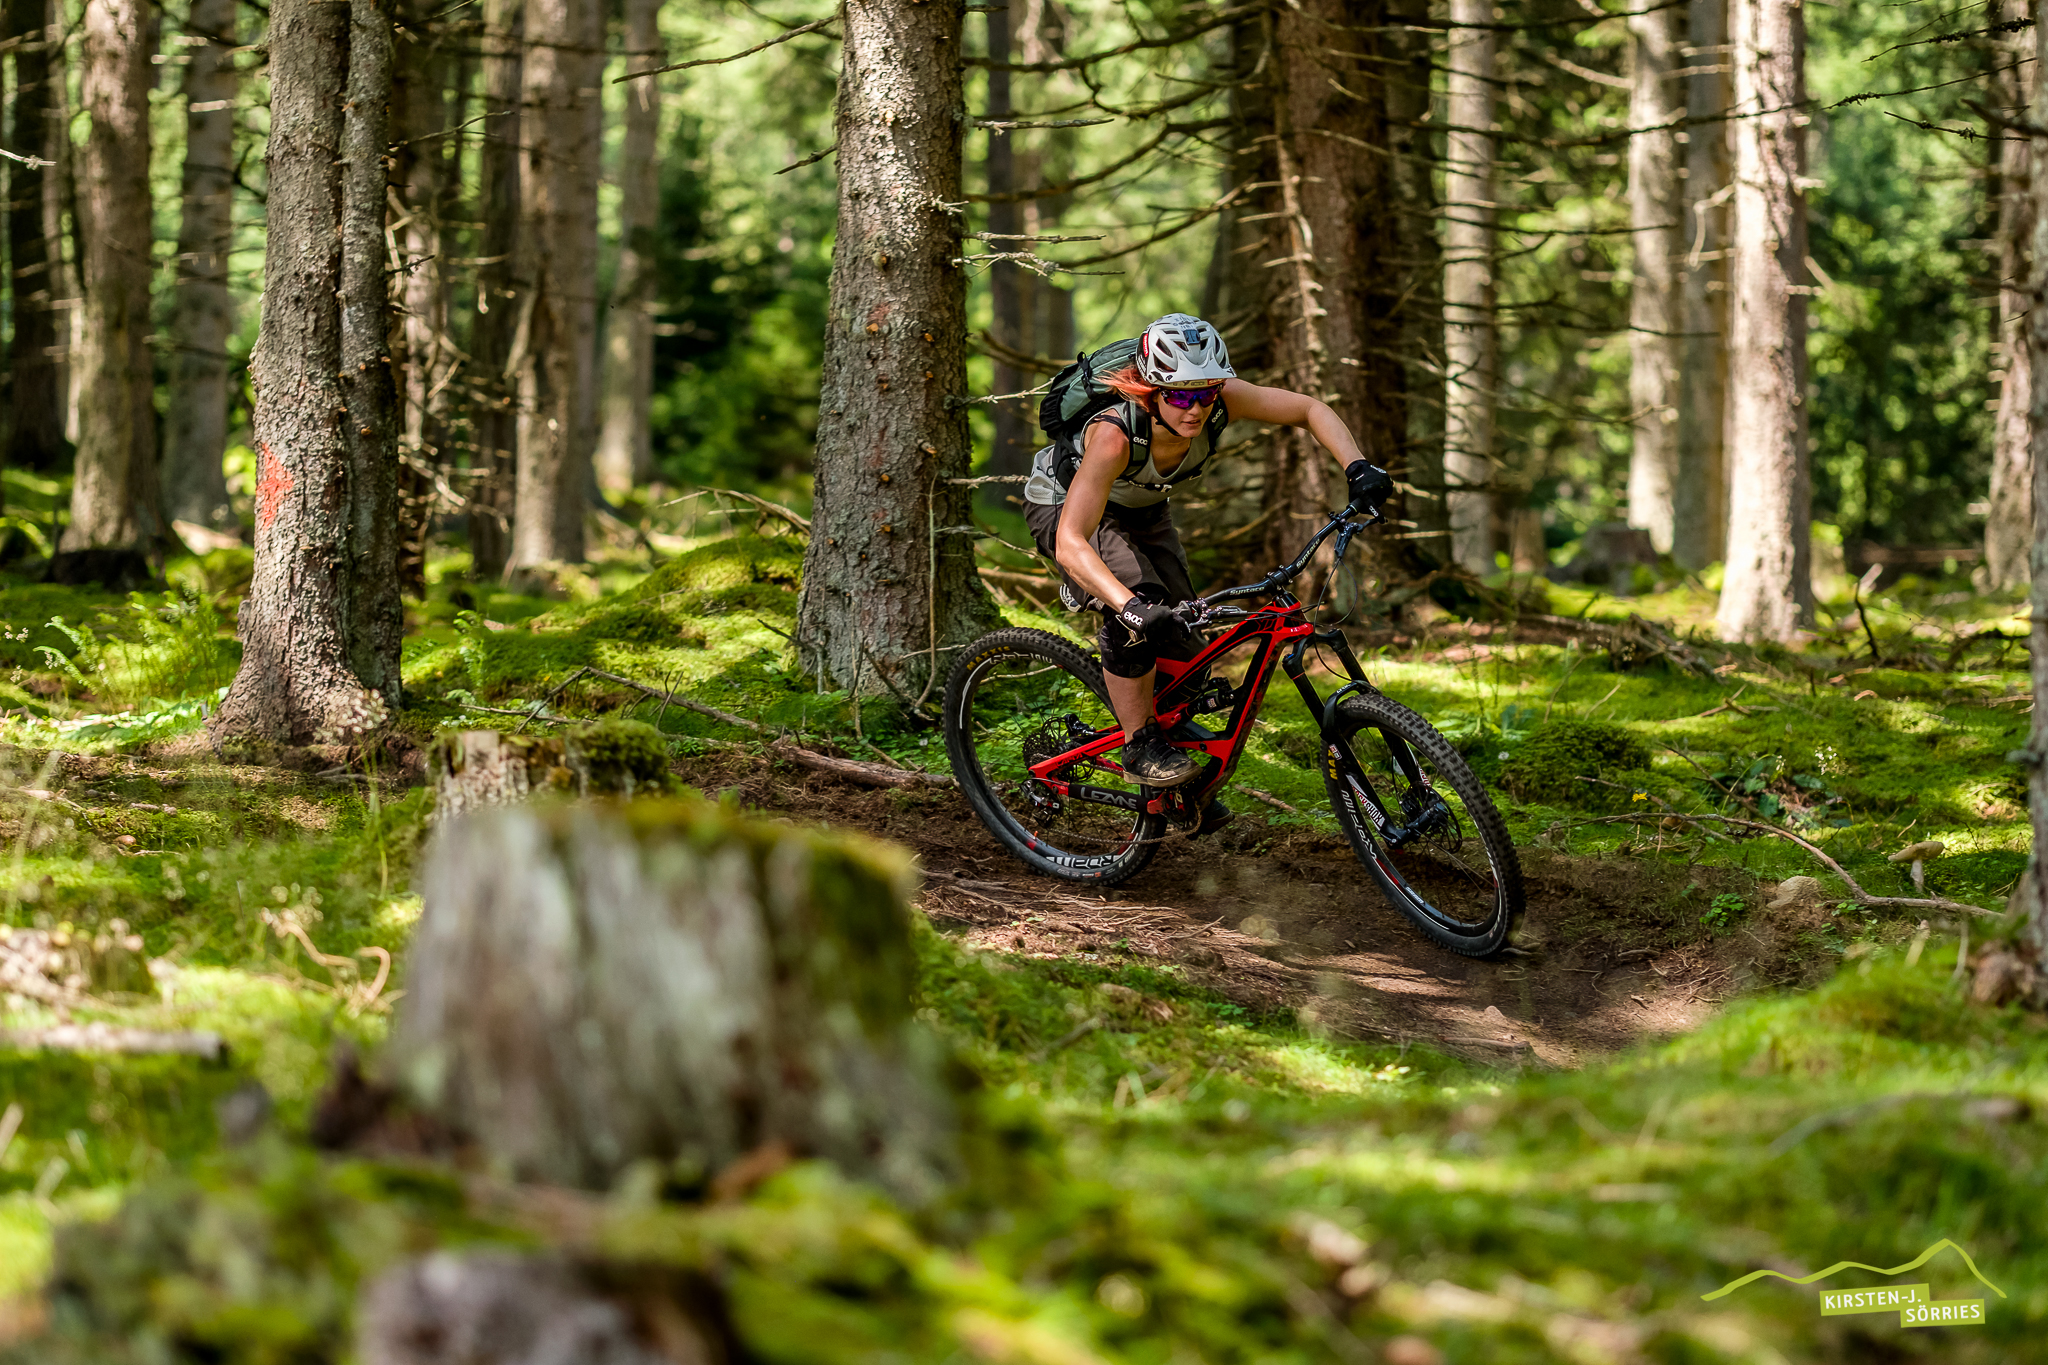 X-Pro2 and Primes: a Good Combination for Sports?